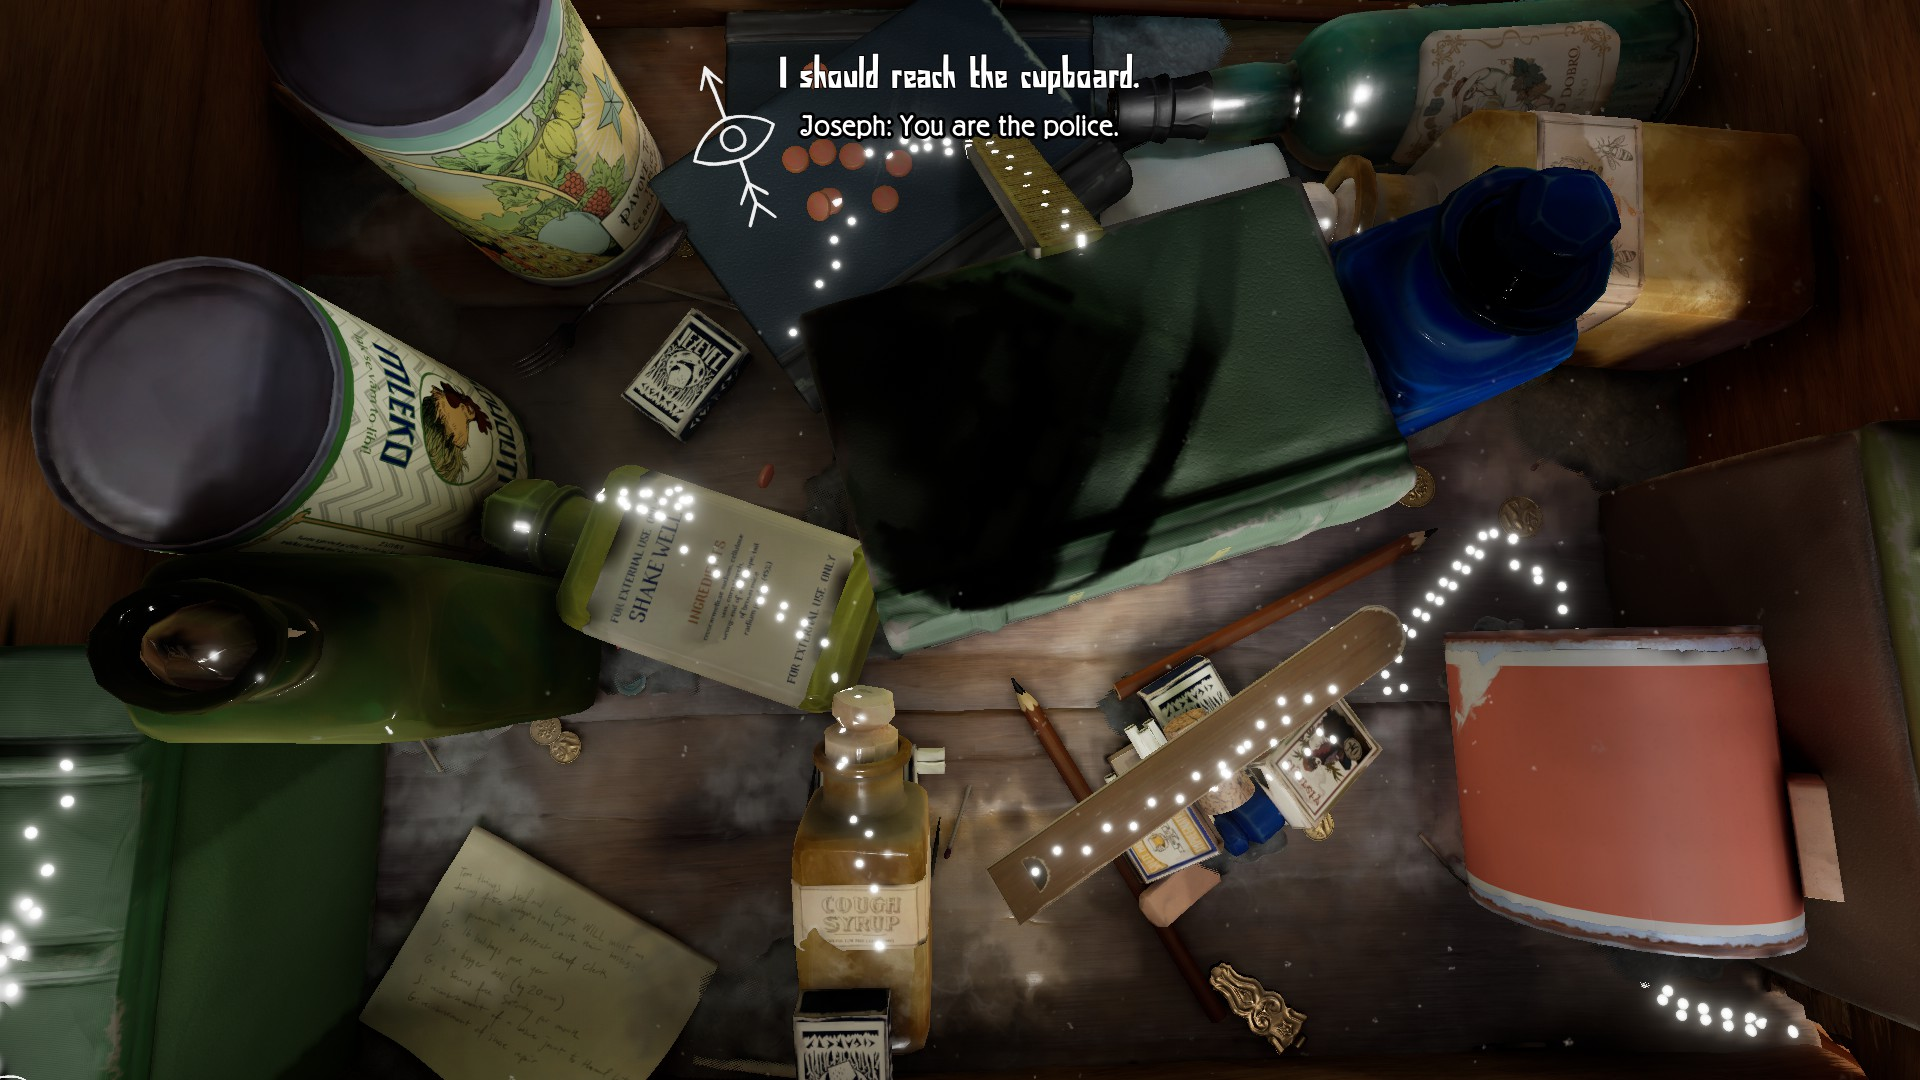 A top down view of a draw full of objects. Books, pencils, bottles, etc. Little glowing bug footprints trail in a winding path around the drawer.